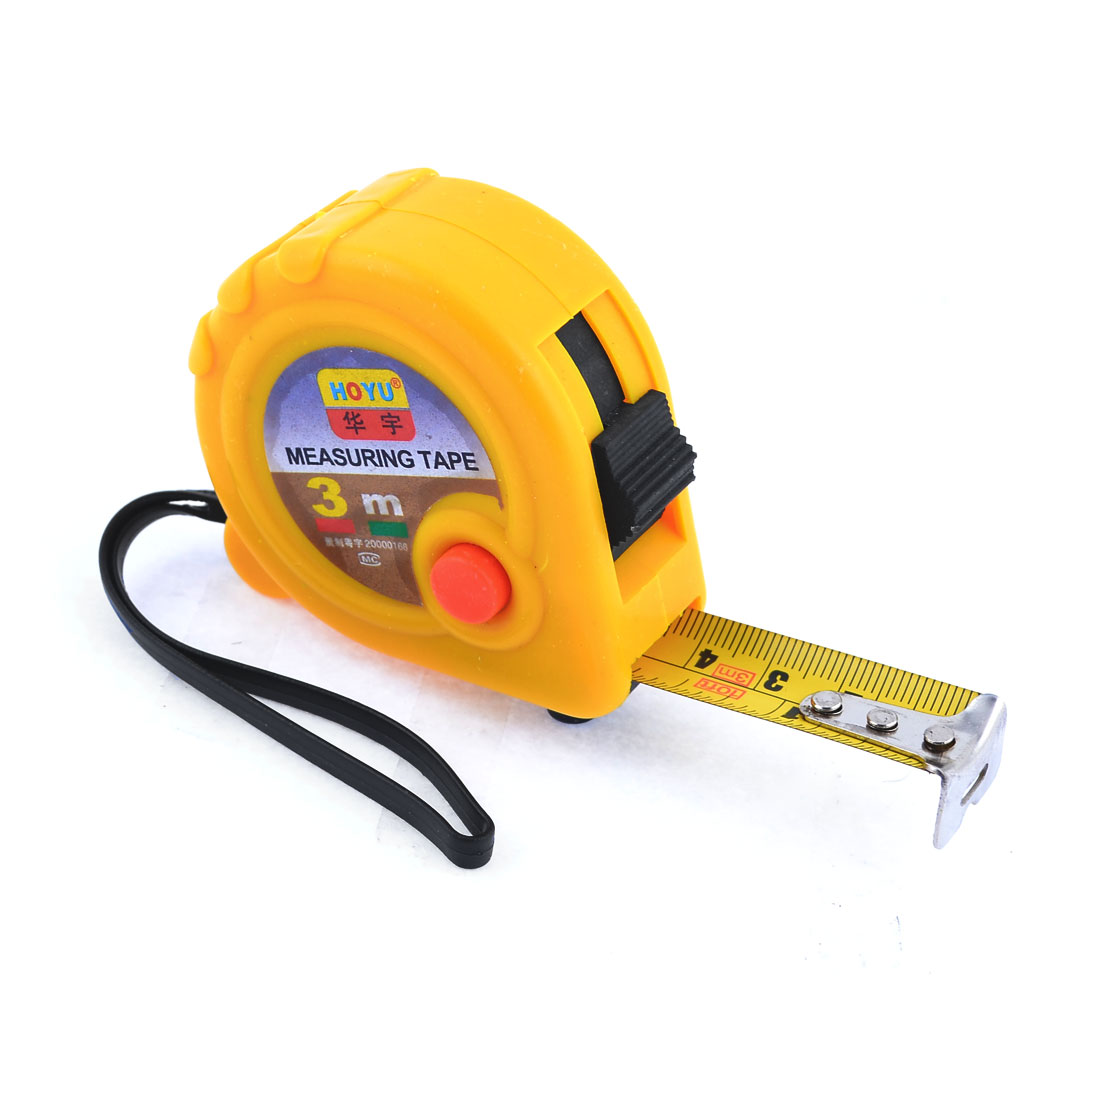 Yellow Case Manual Lock 3 Meters Pocket Steel Measuring Tape Bandtape Tapeline